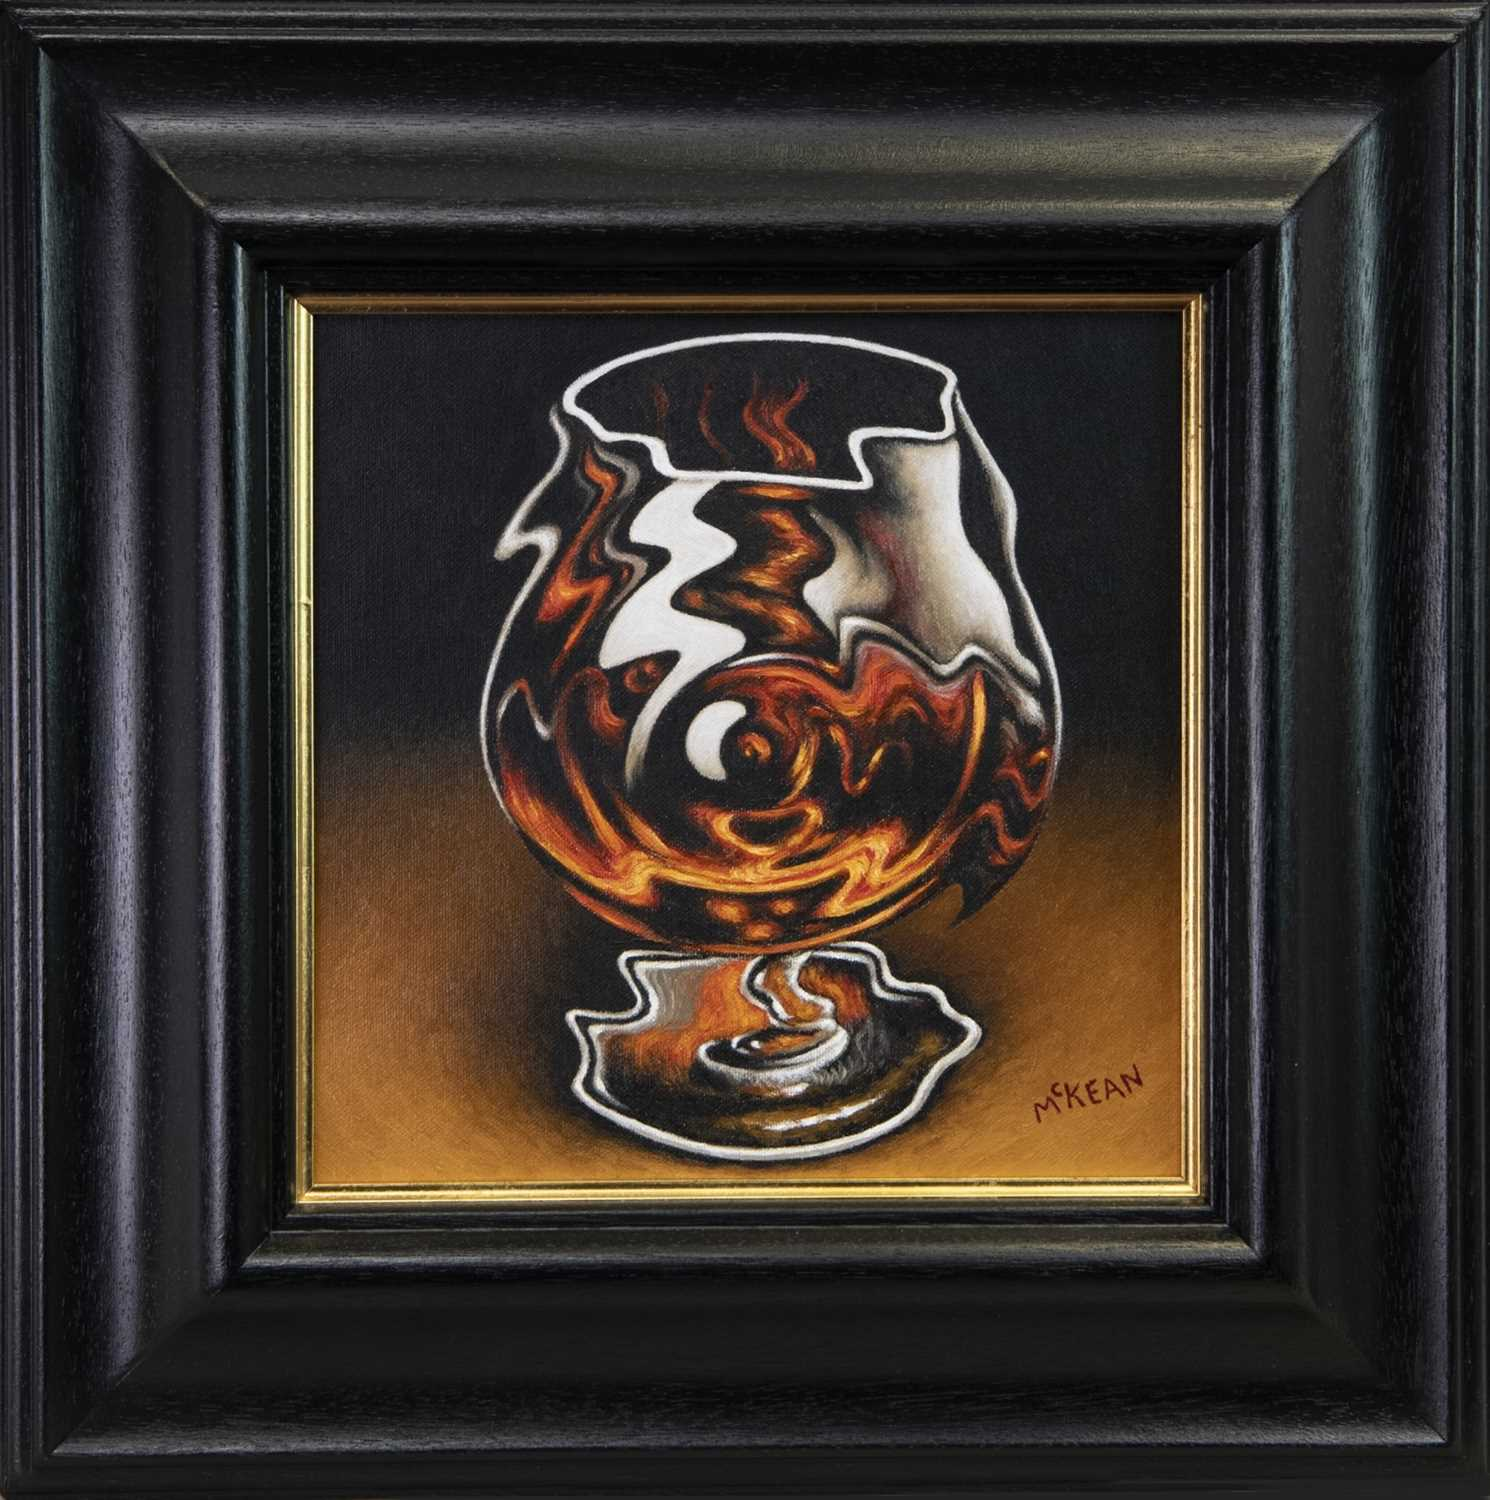 Lot 74 - A DROP TOO MUCH, AN OIL BY GRAHAM MCKEAN